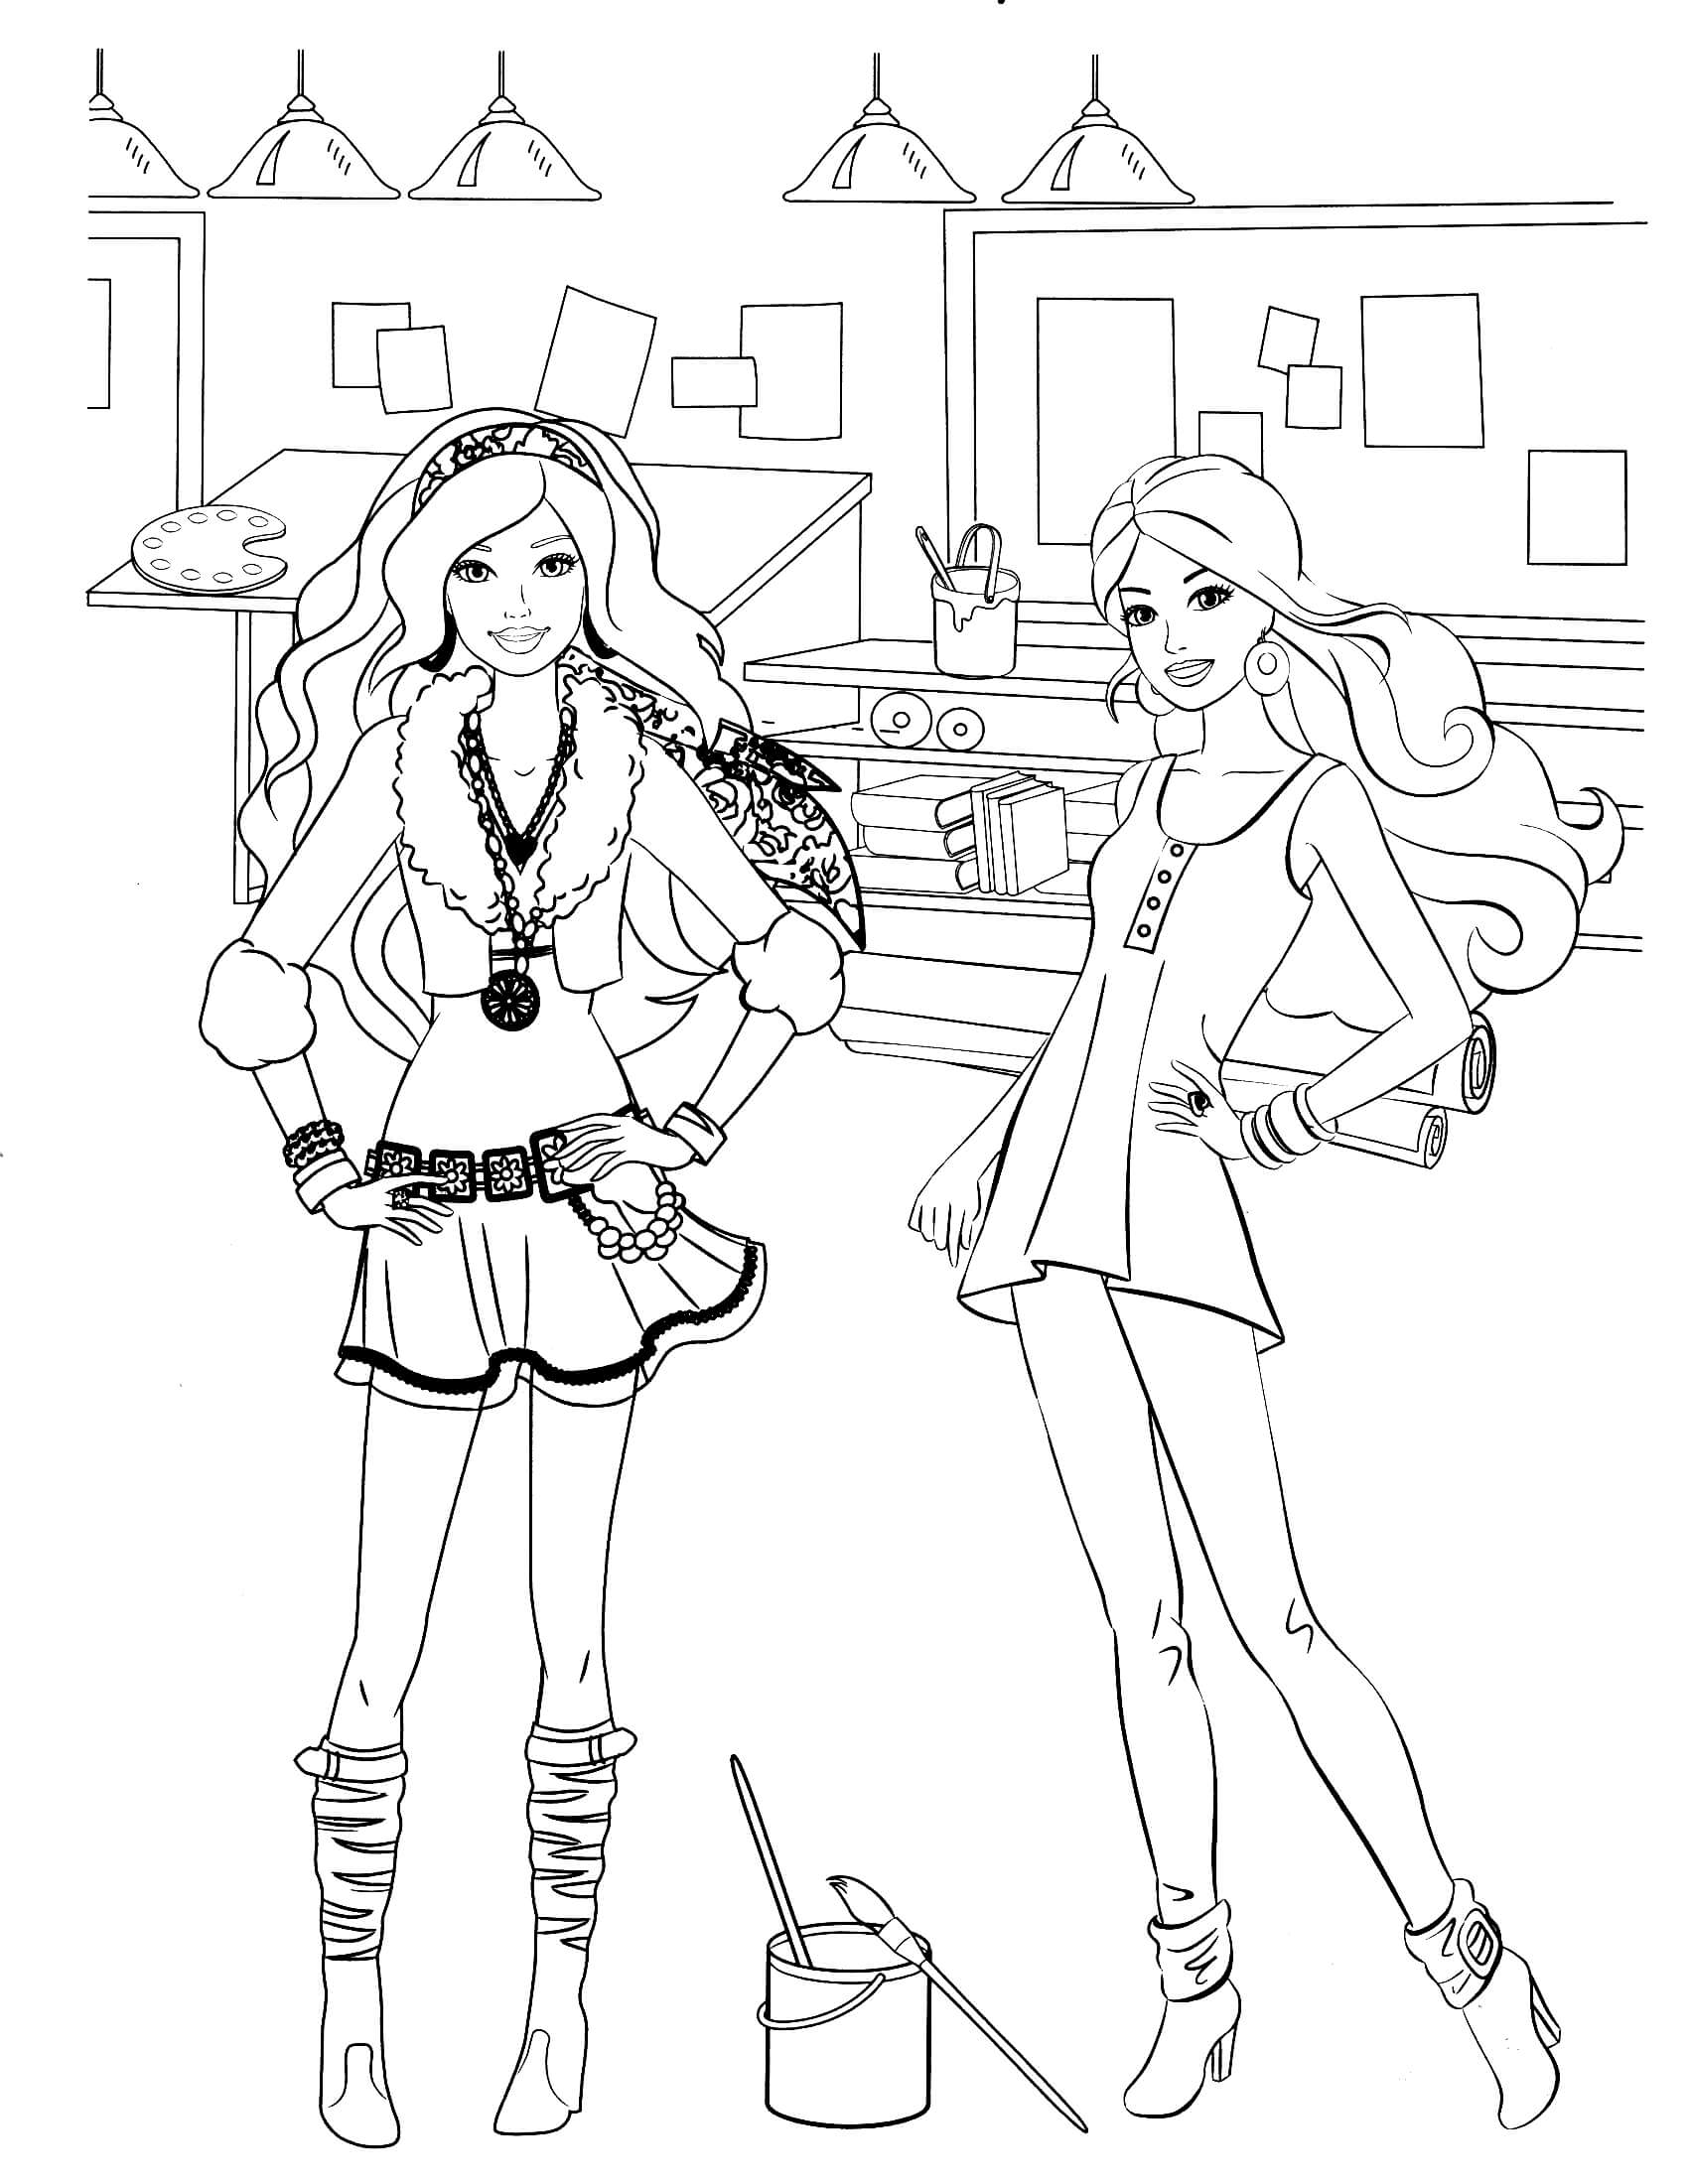 barbie colouring in picture barbie coloring pages for girls toddlers adults print in barbie colouring picture